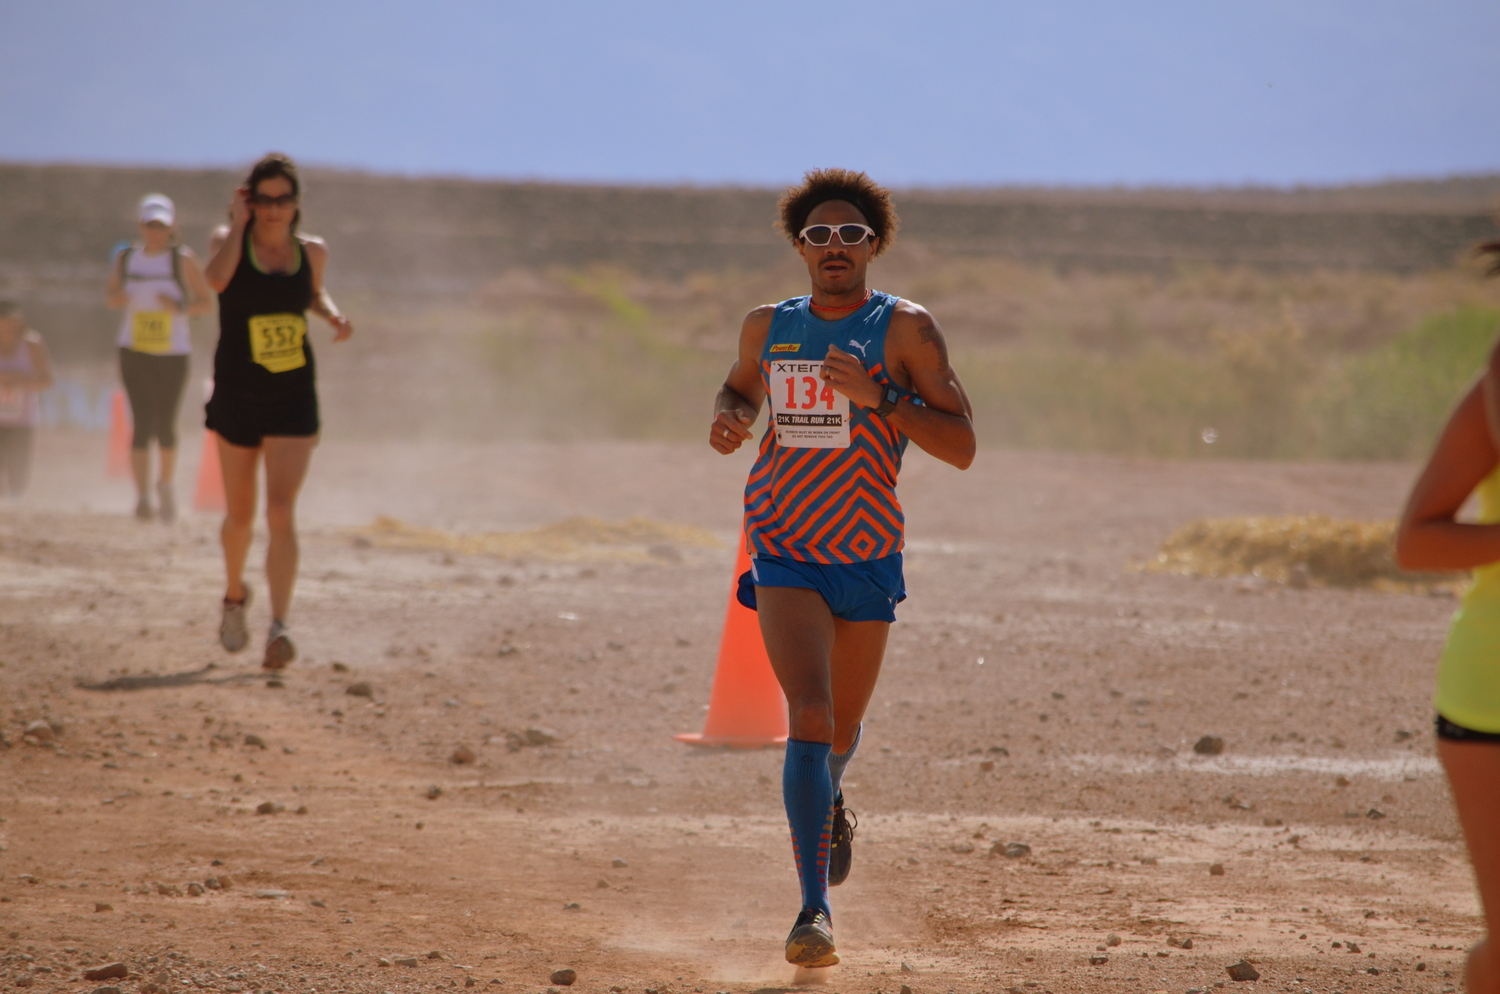 Working my way through lapped runners and/or 5K/10K competitors